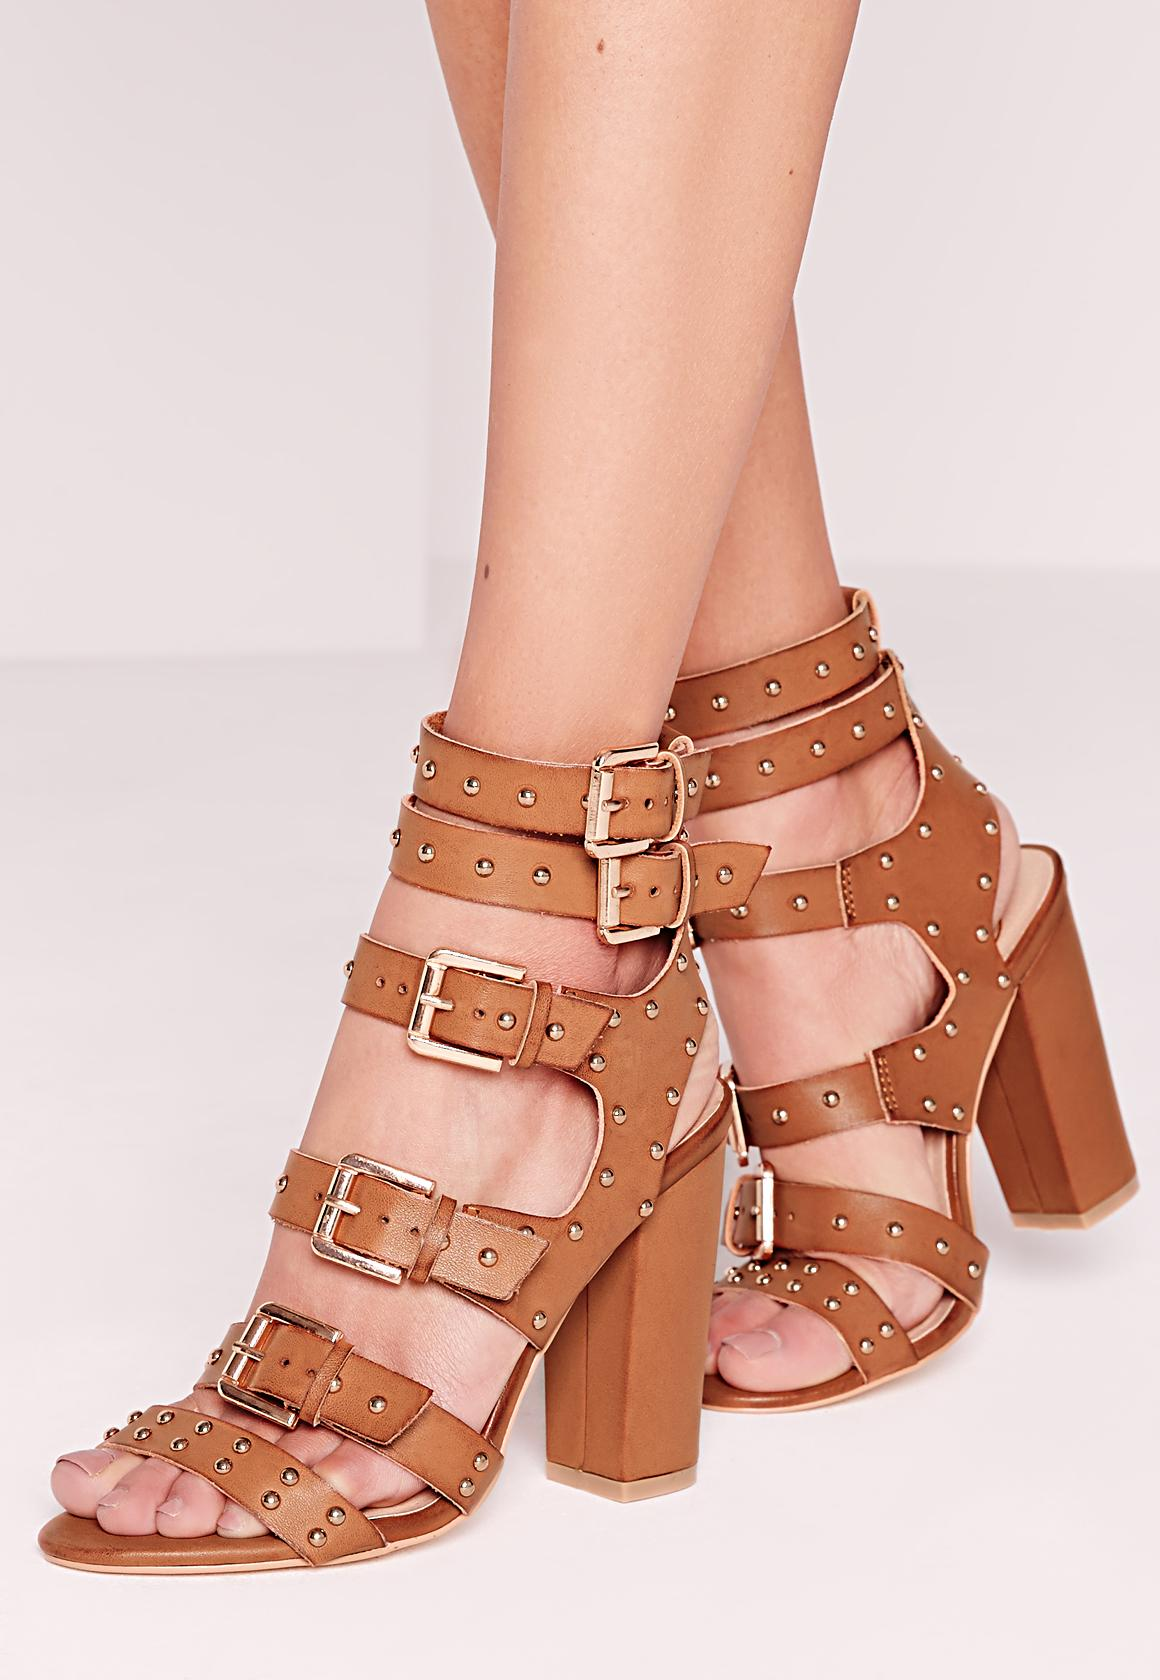 Buckled Block Heel Gladiator Sandals Tan - Missguided